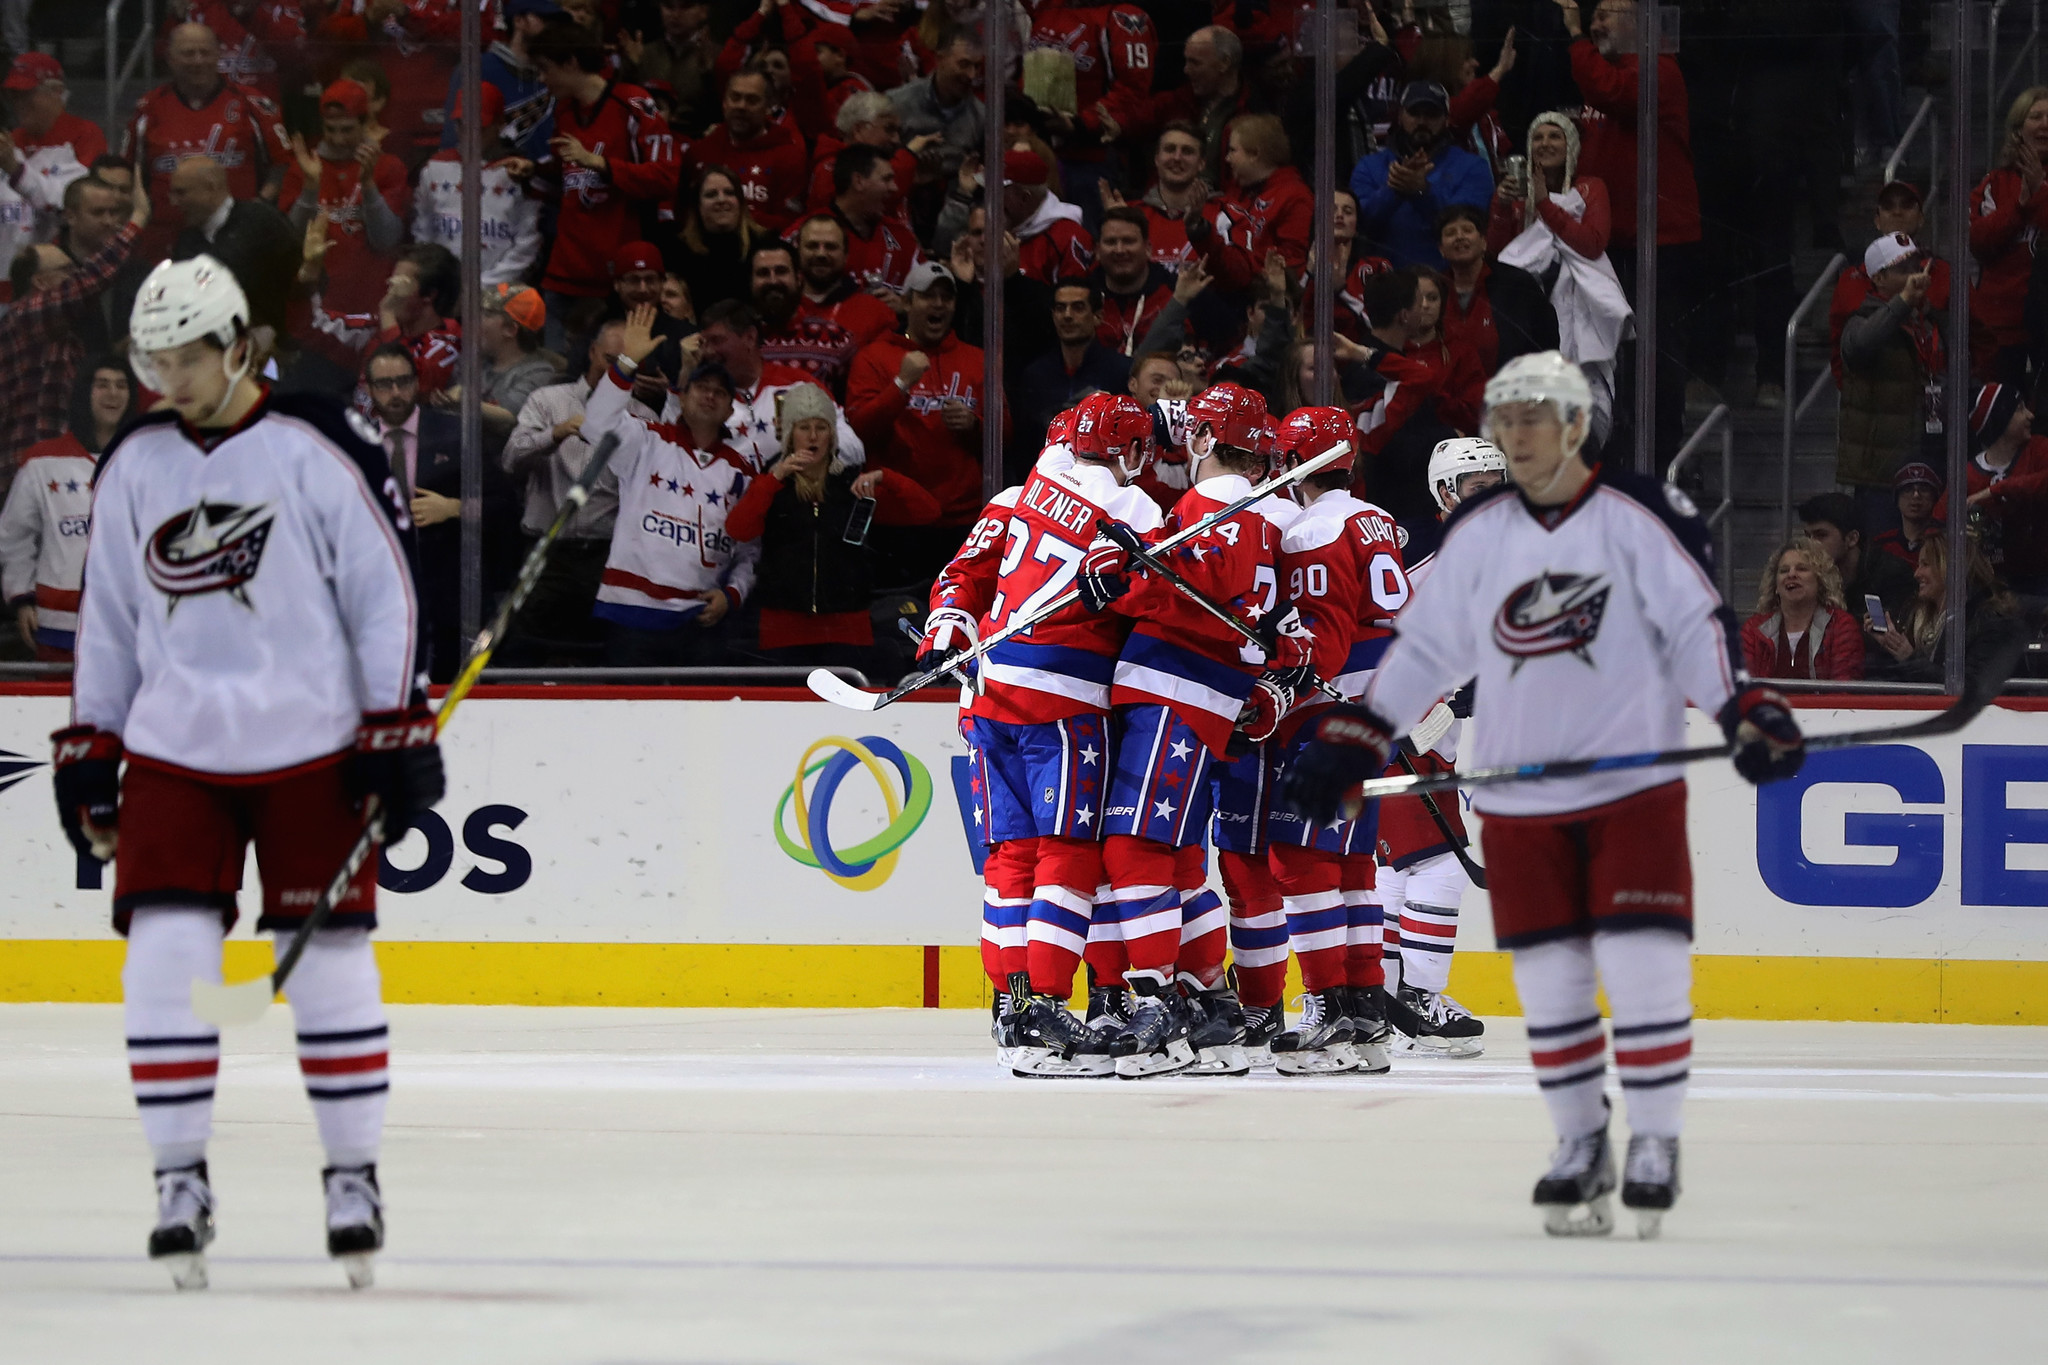 Blue Jackets' win streak snapped at 16, one shy of NHL record ...